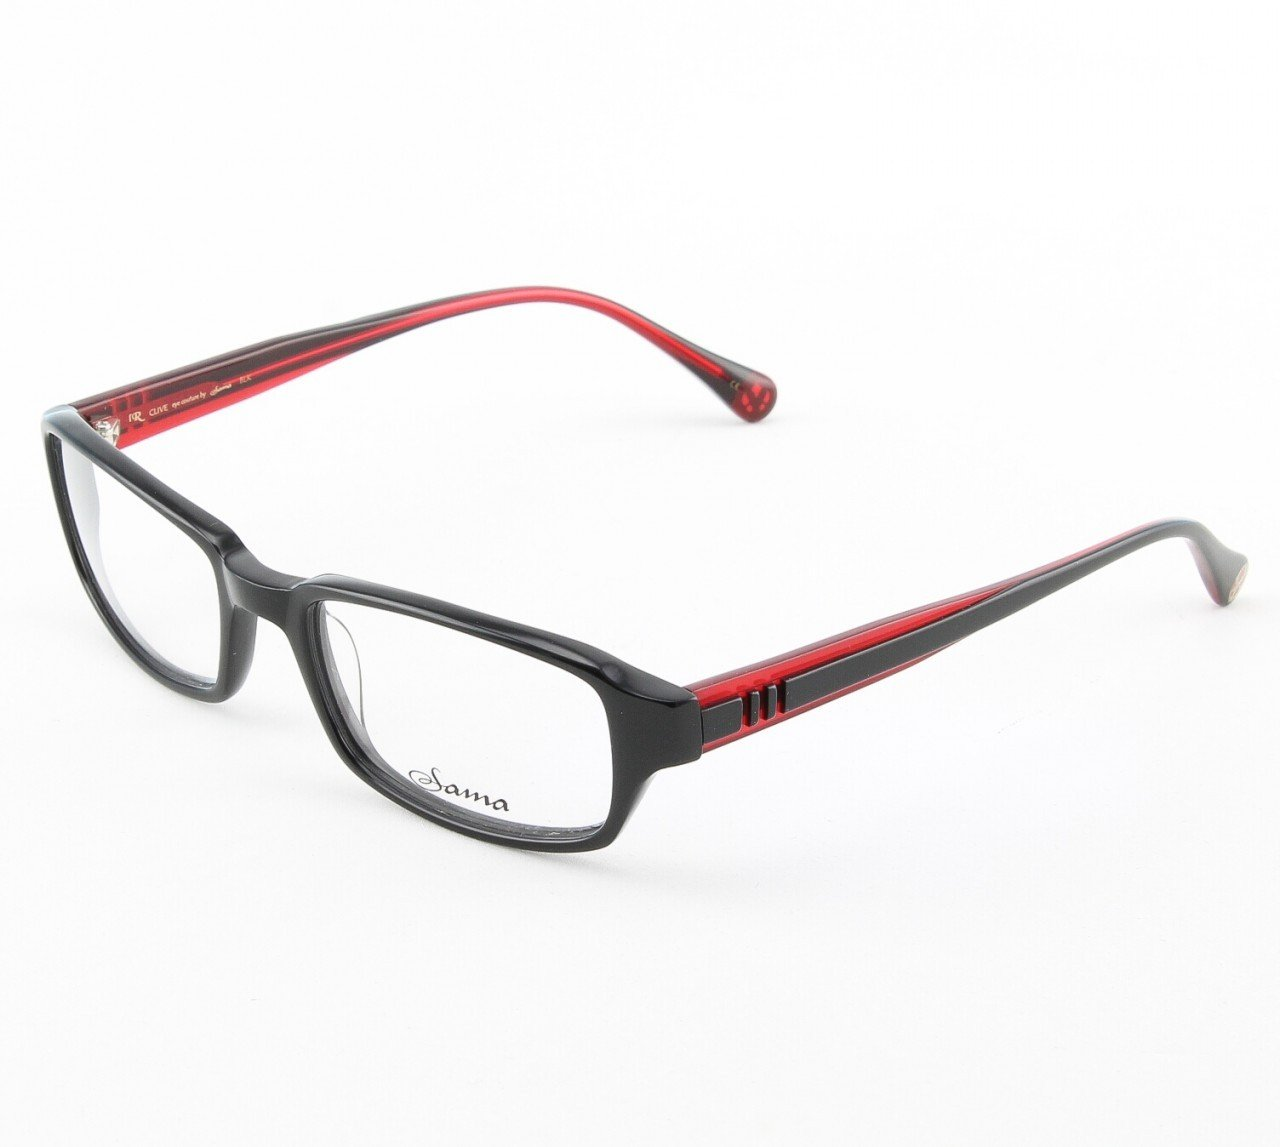 Loree Rodkin Clive Eyeglasses by Sama Col. Black with Clear Lenses